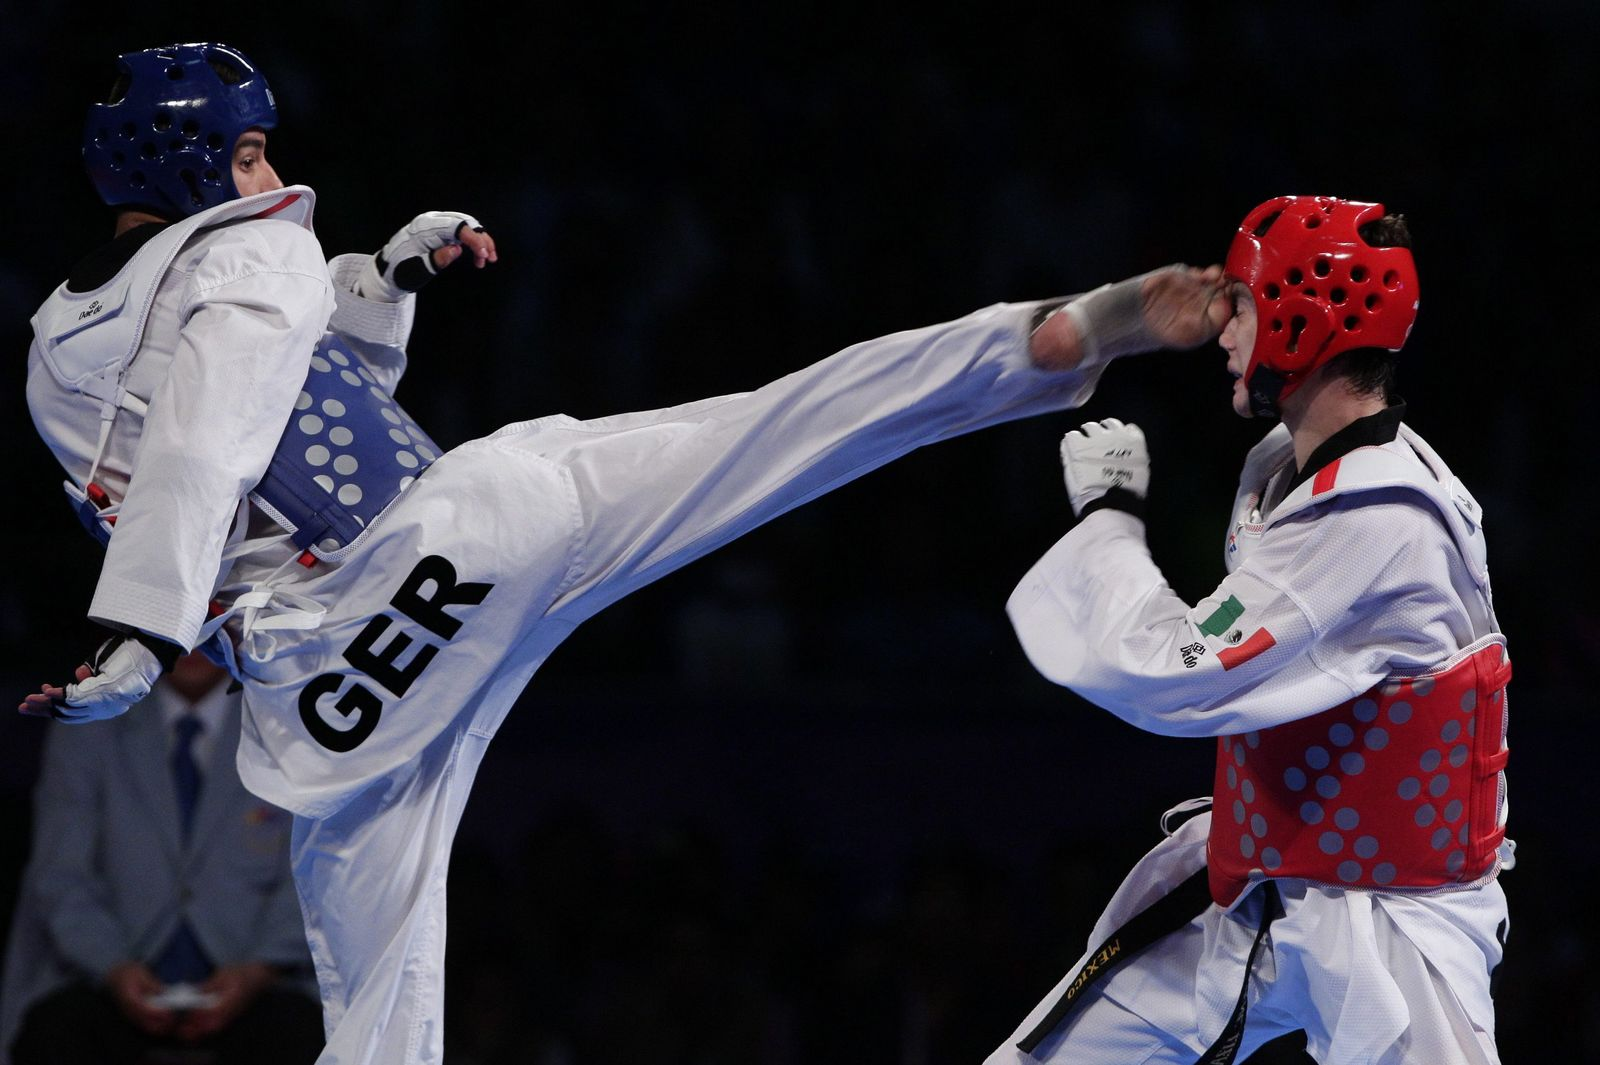 World Championship of Taekwondo in Puebla